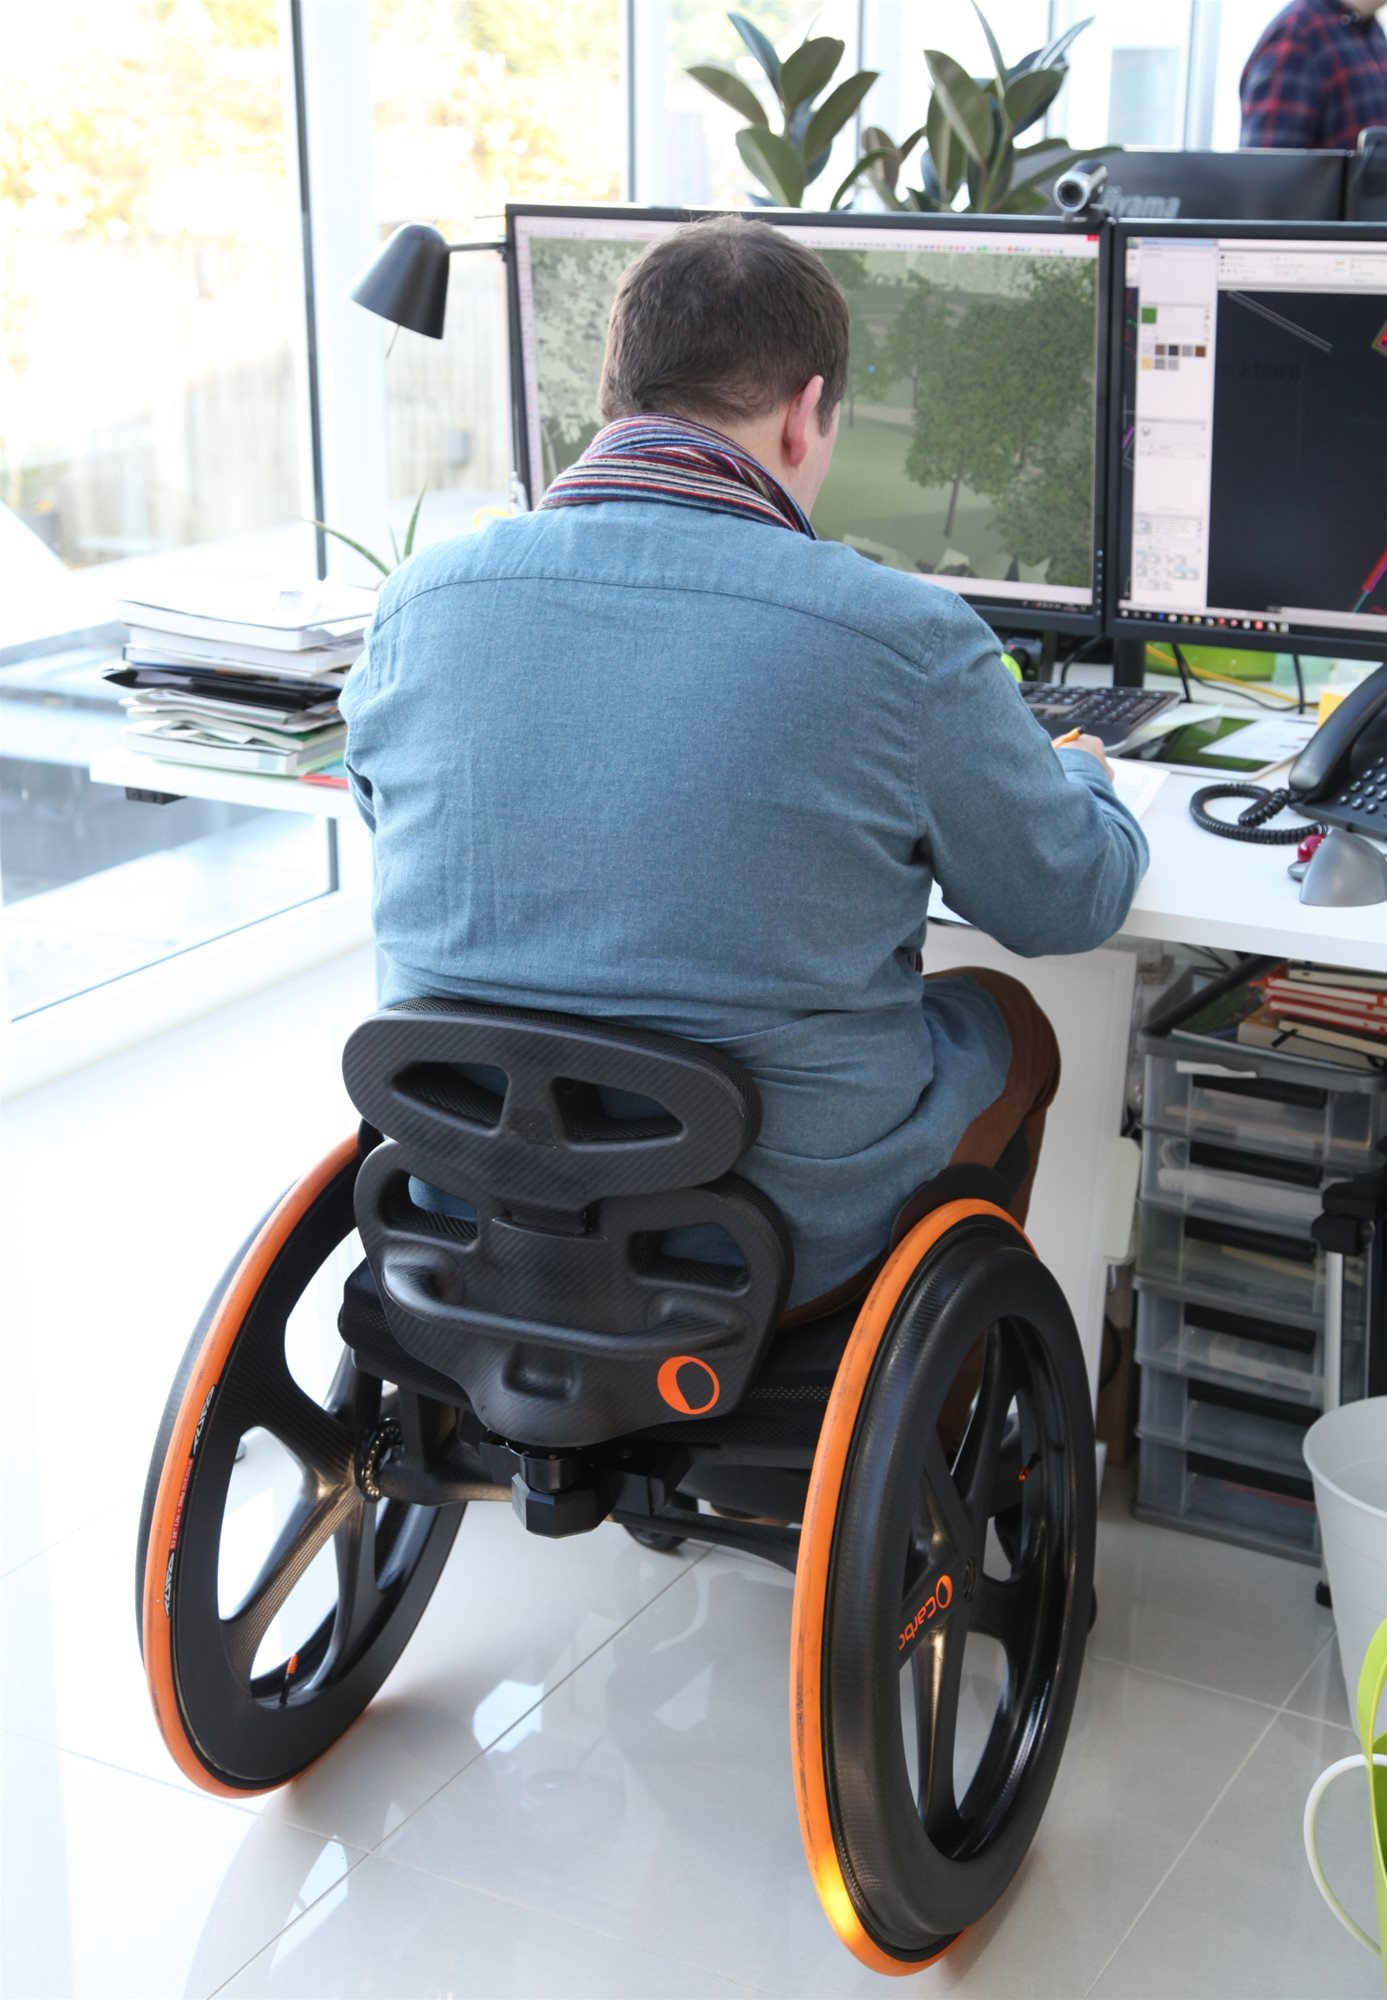 Person seated at desk in Carbon Black Wheelchair